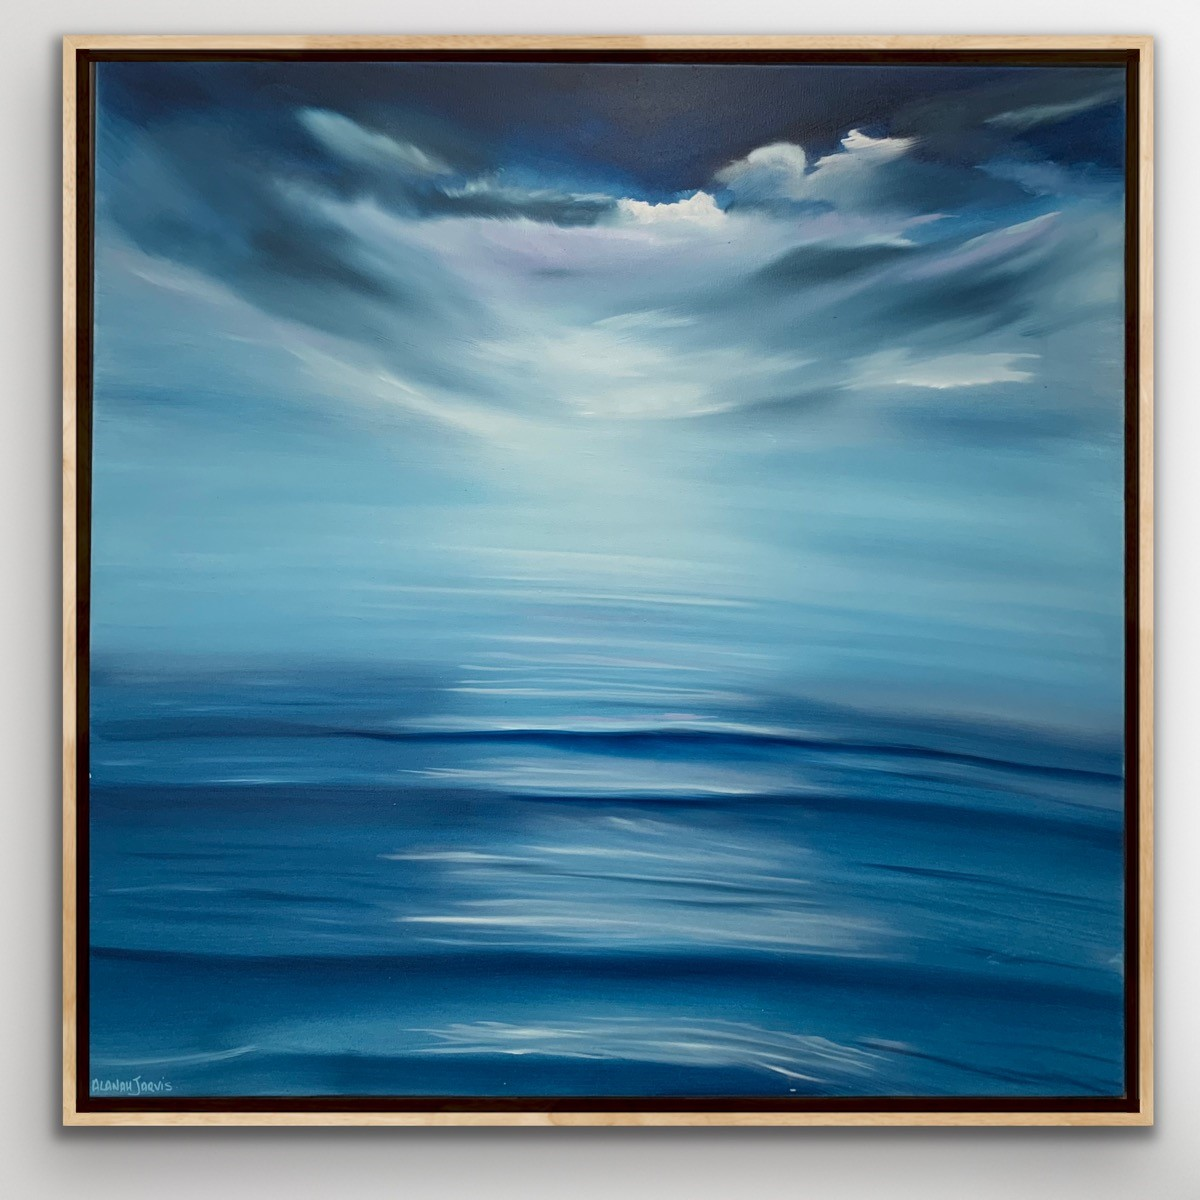 Product Image 2 Alanah Jarvis Limitless Ocean Oil Painting